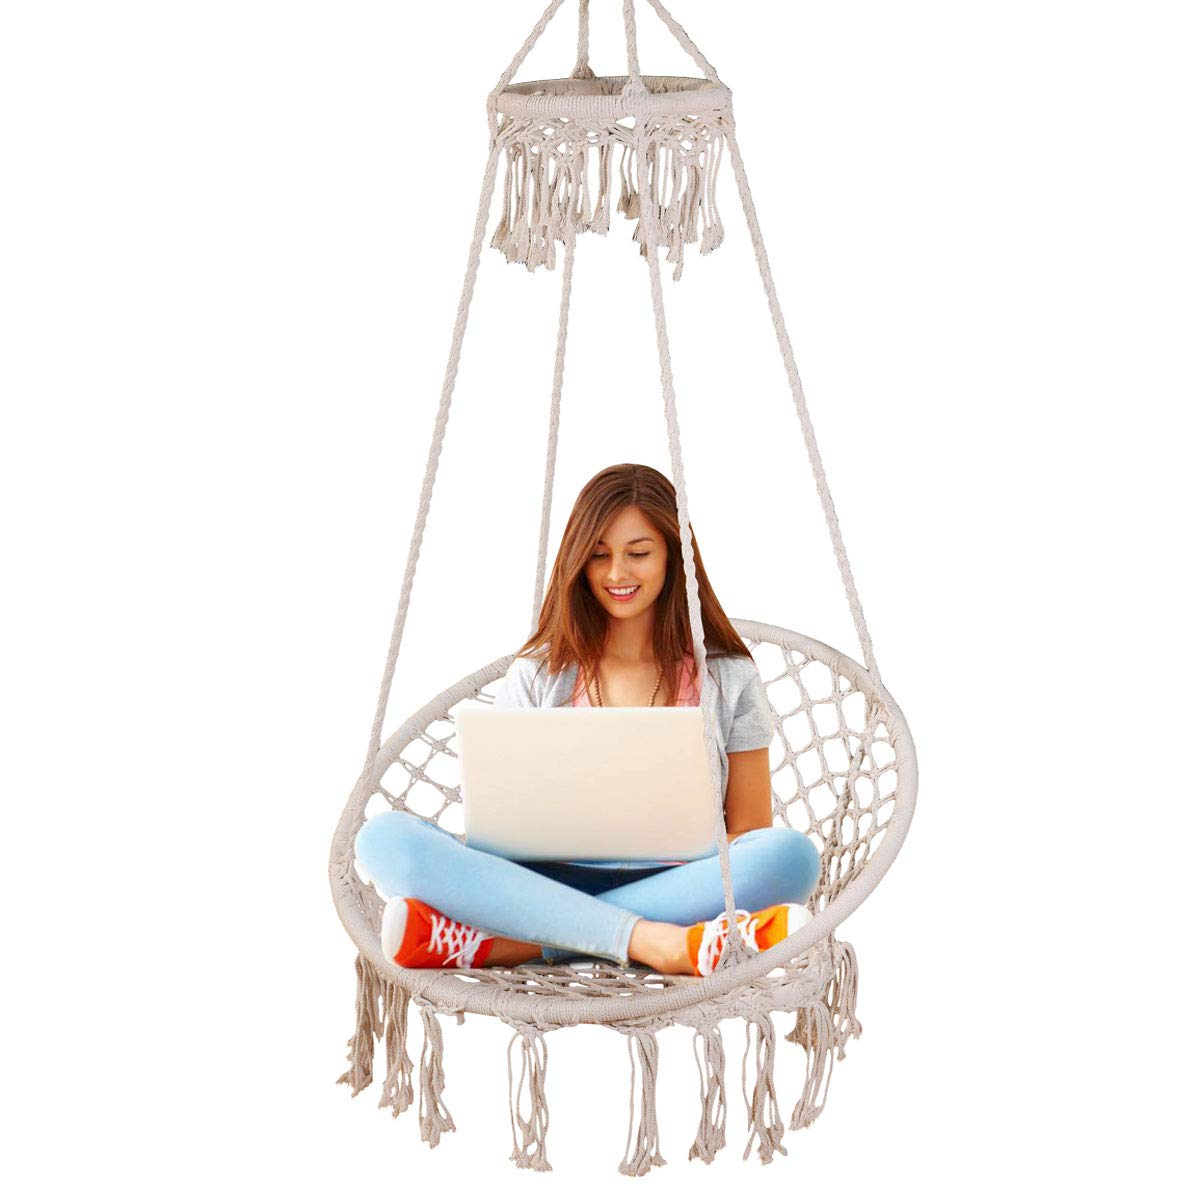 Sonyabecca Hanging Chair Macrame Hammock Swing Chair Large Size wih Top CircleTassels 265 Pound Capacity Handmade Knitted Hangingfor Indoor/Outdoor Home Patio Deck Yard Garden Reading Leisure Lounging